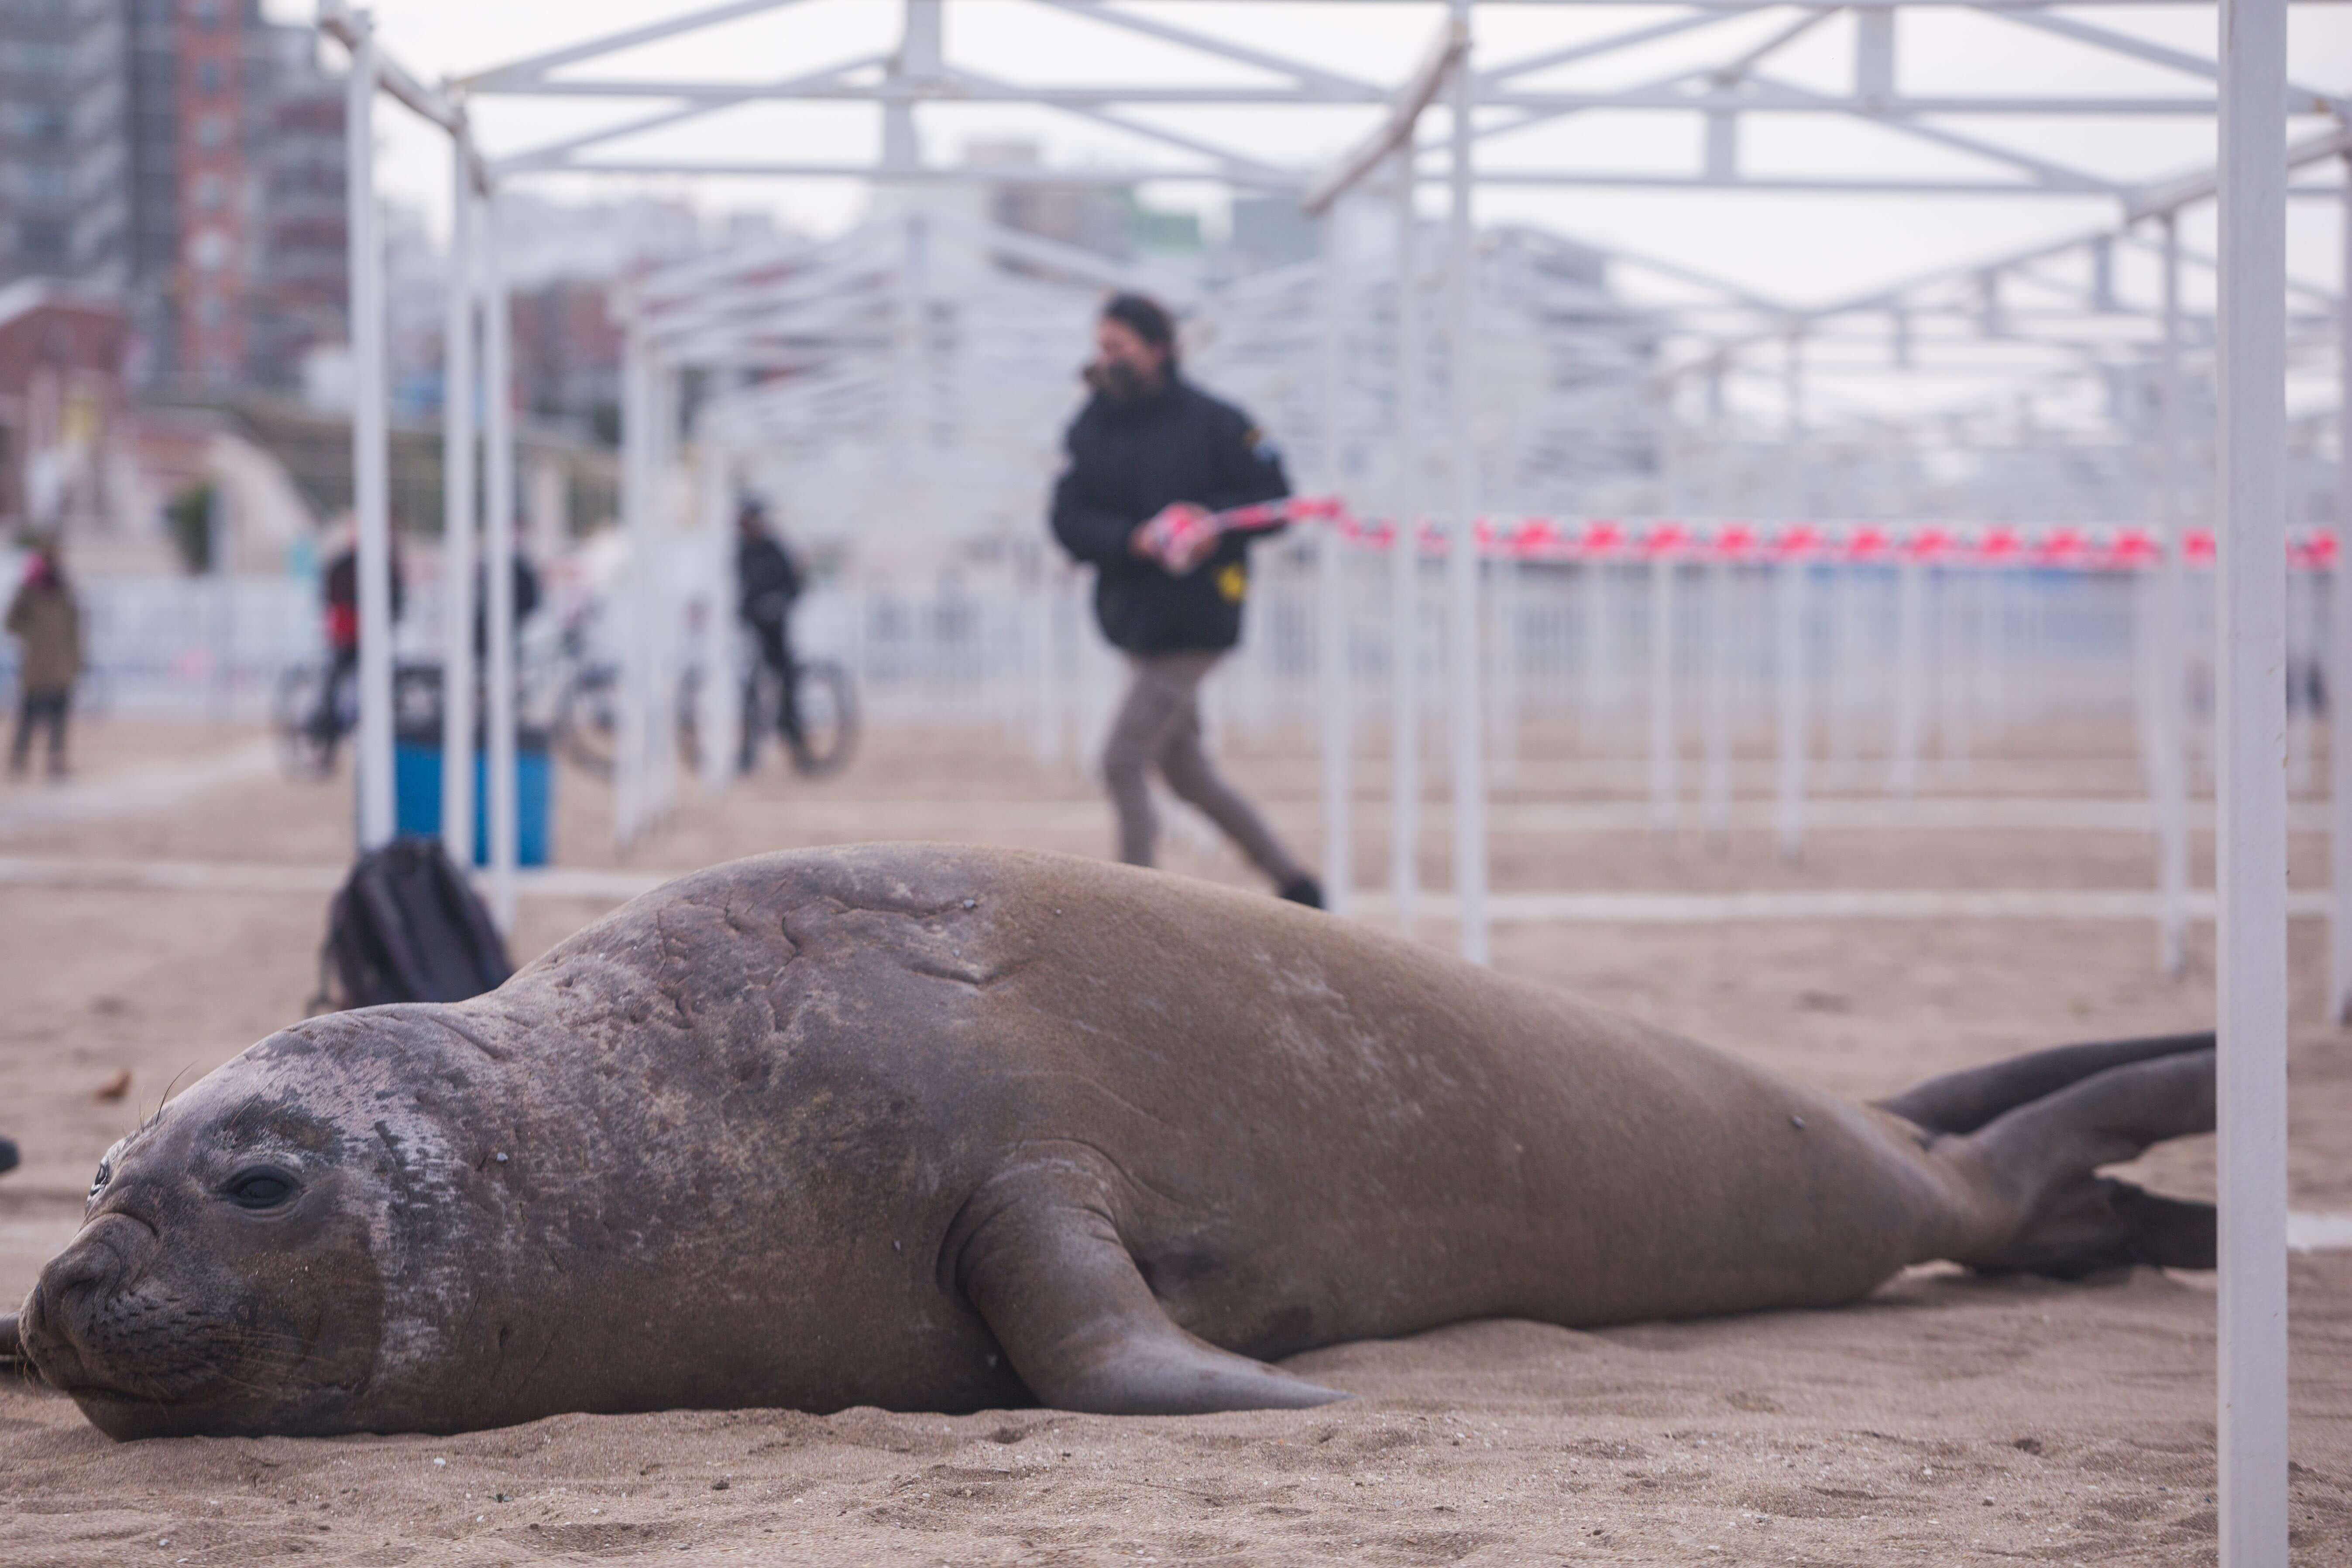 The elephant seal that was stranded on the balenario weighs about 1,000 kilos. (Photo: Télam).